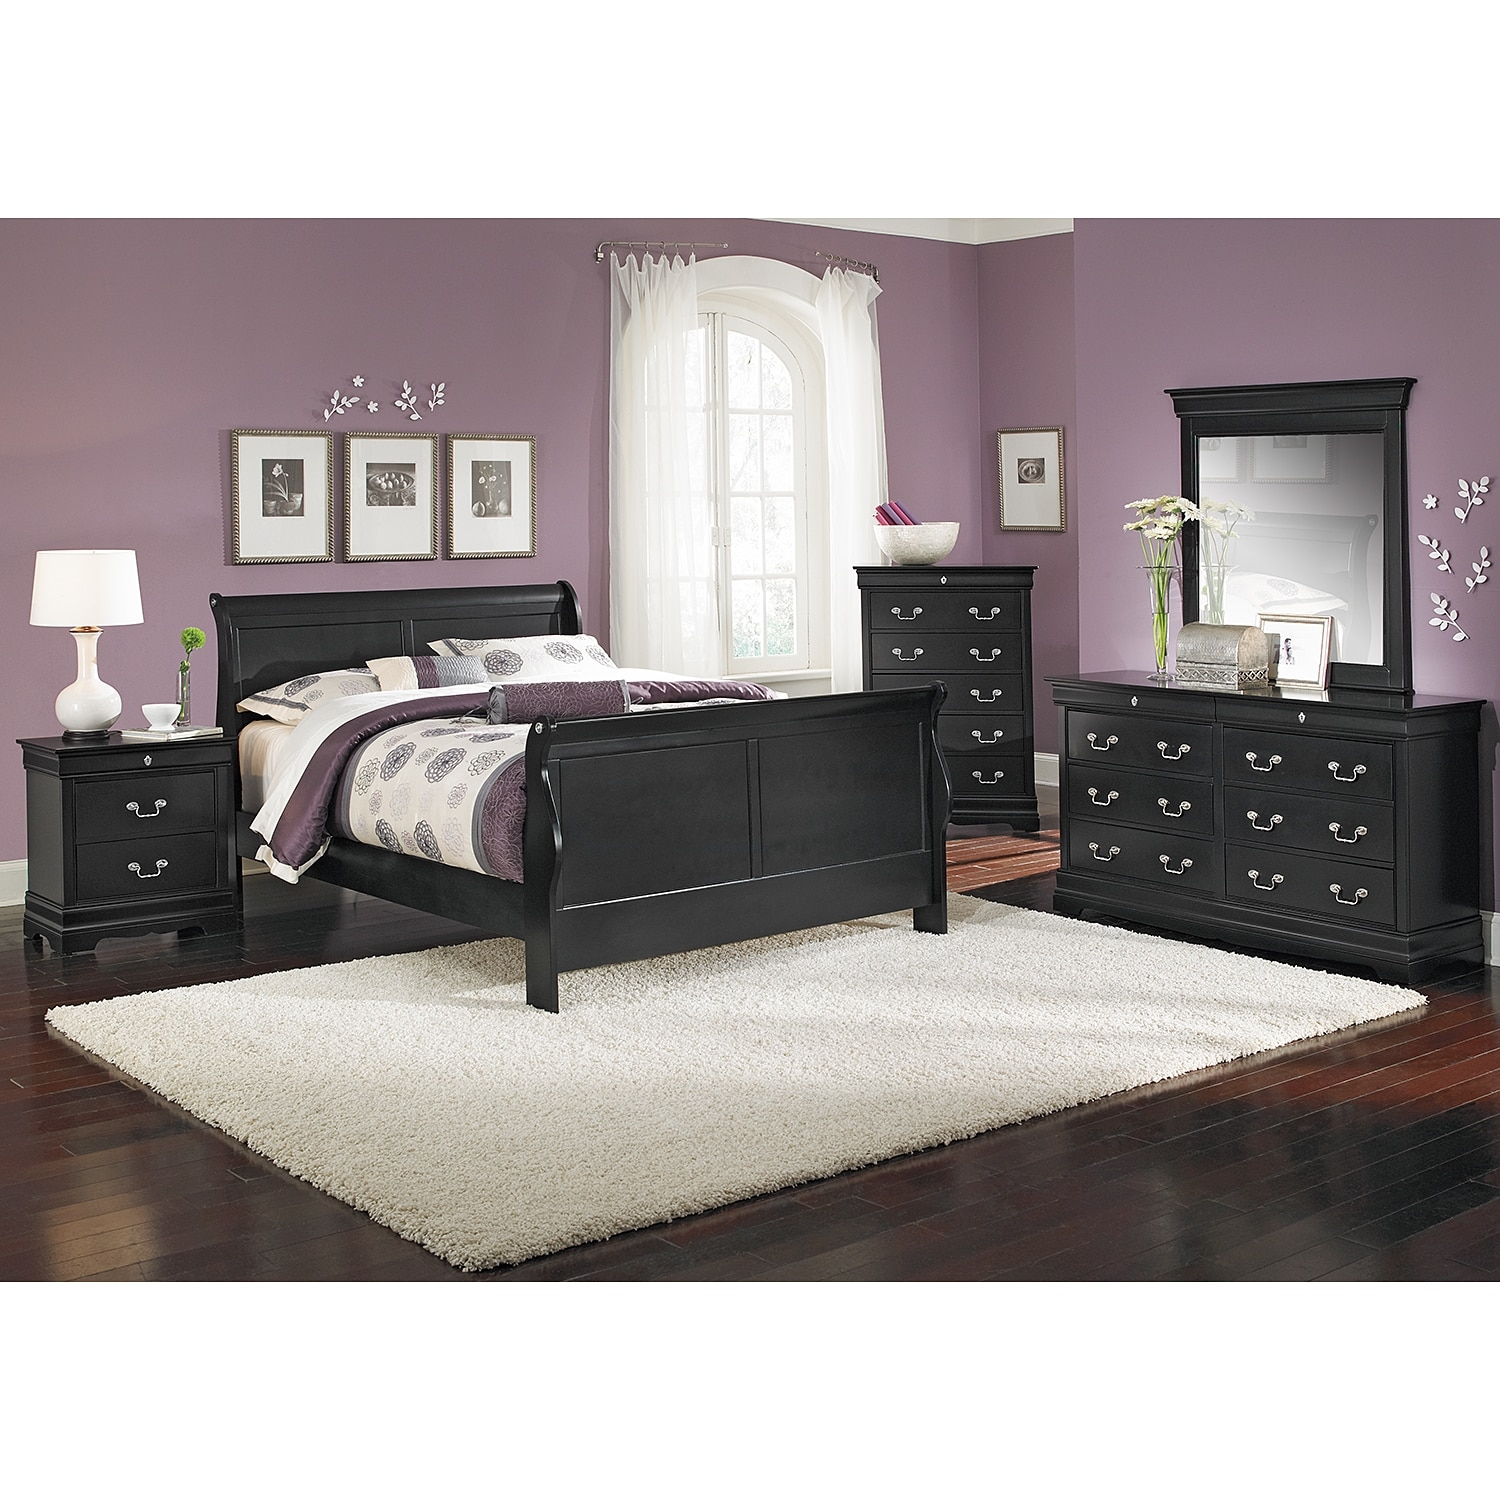 Neo classic 7 piece king bedroom set black american for King bedroom furniture